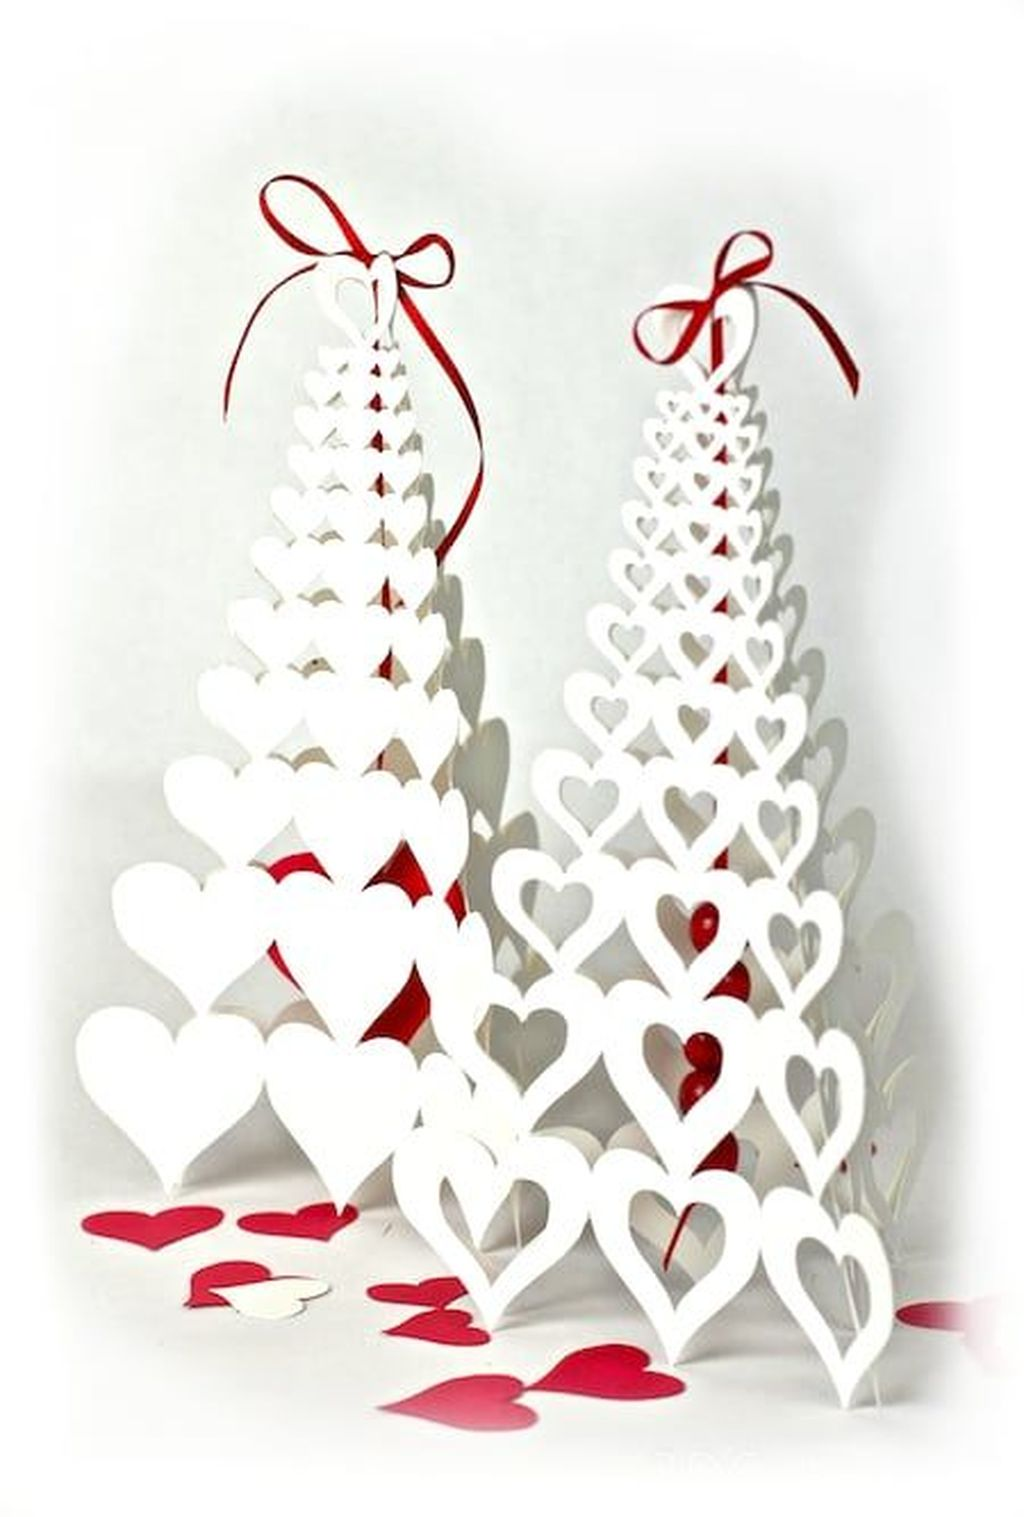 Inspiring Valentine Crafts Ideas For Your Home Decor 39